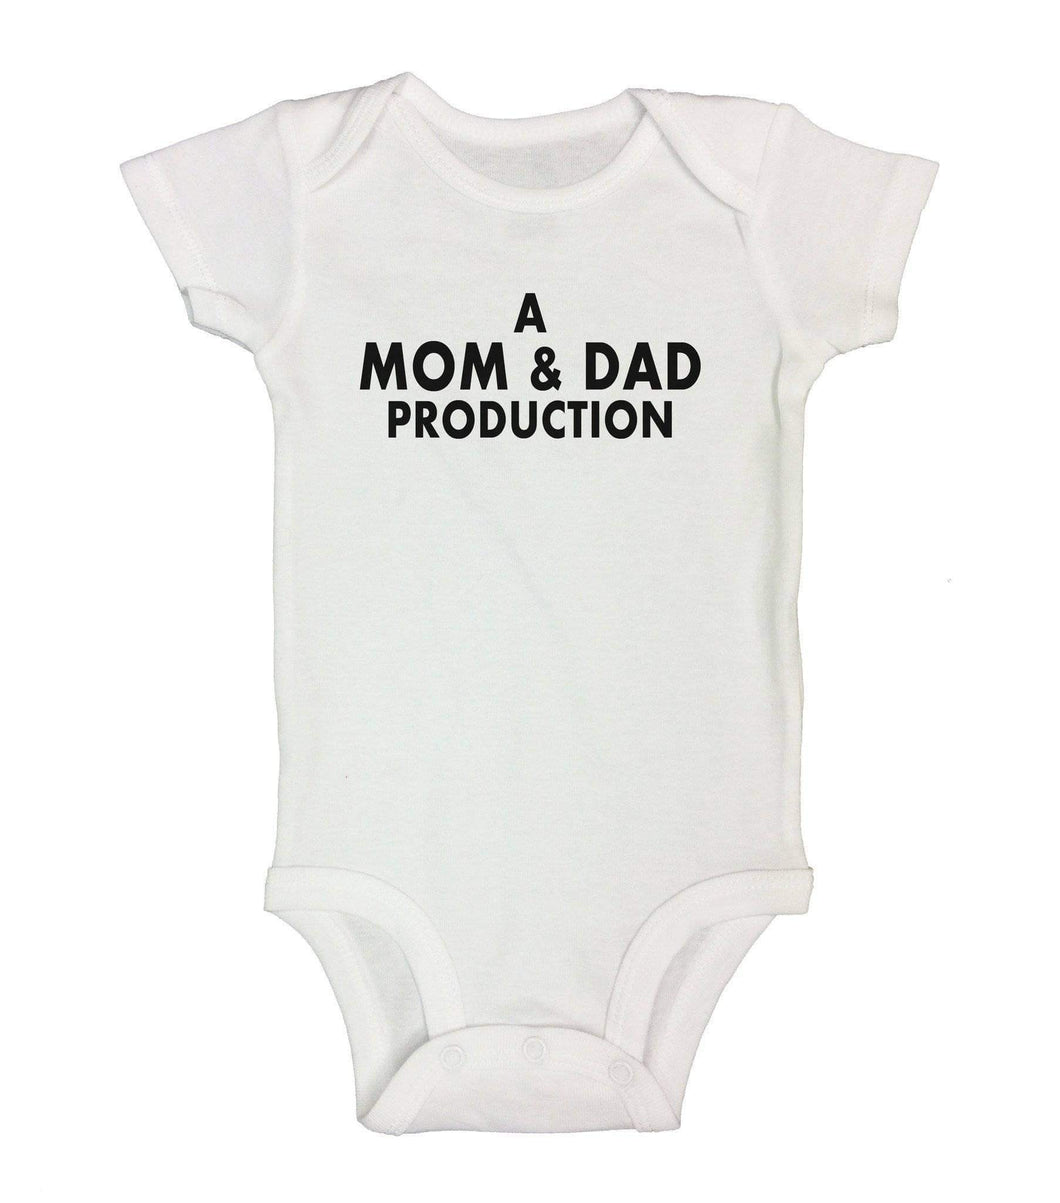 A Mom & Dad Production Funny Kids Onesie Short Sleeve 0-3 Months Womens Tank Tops White